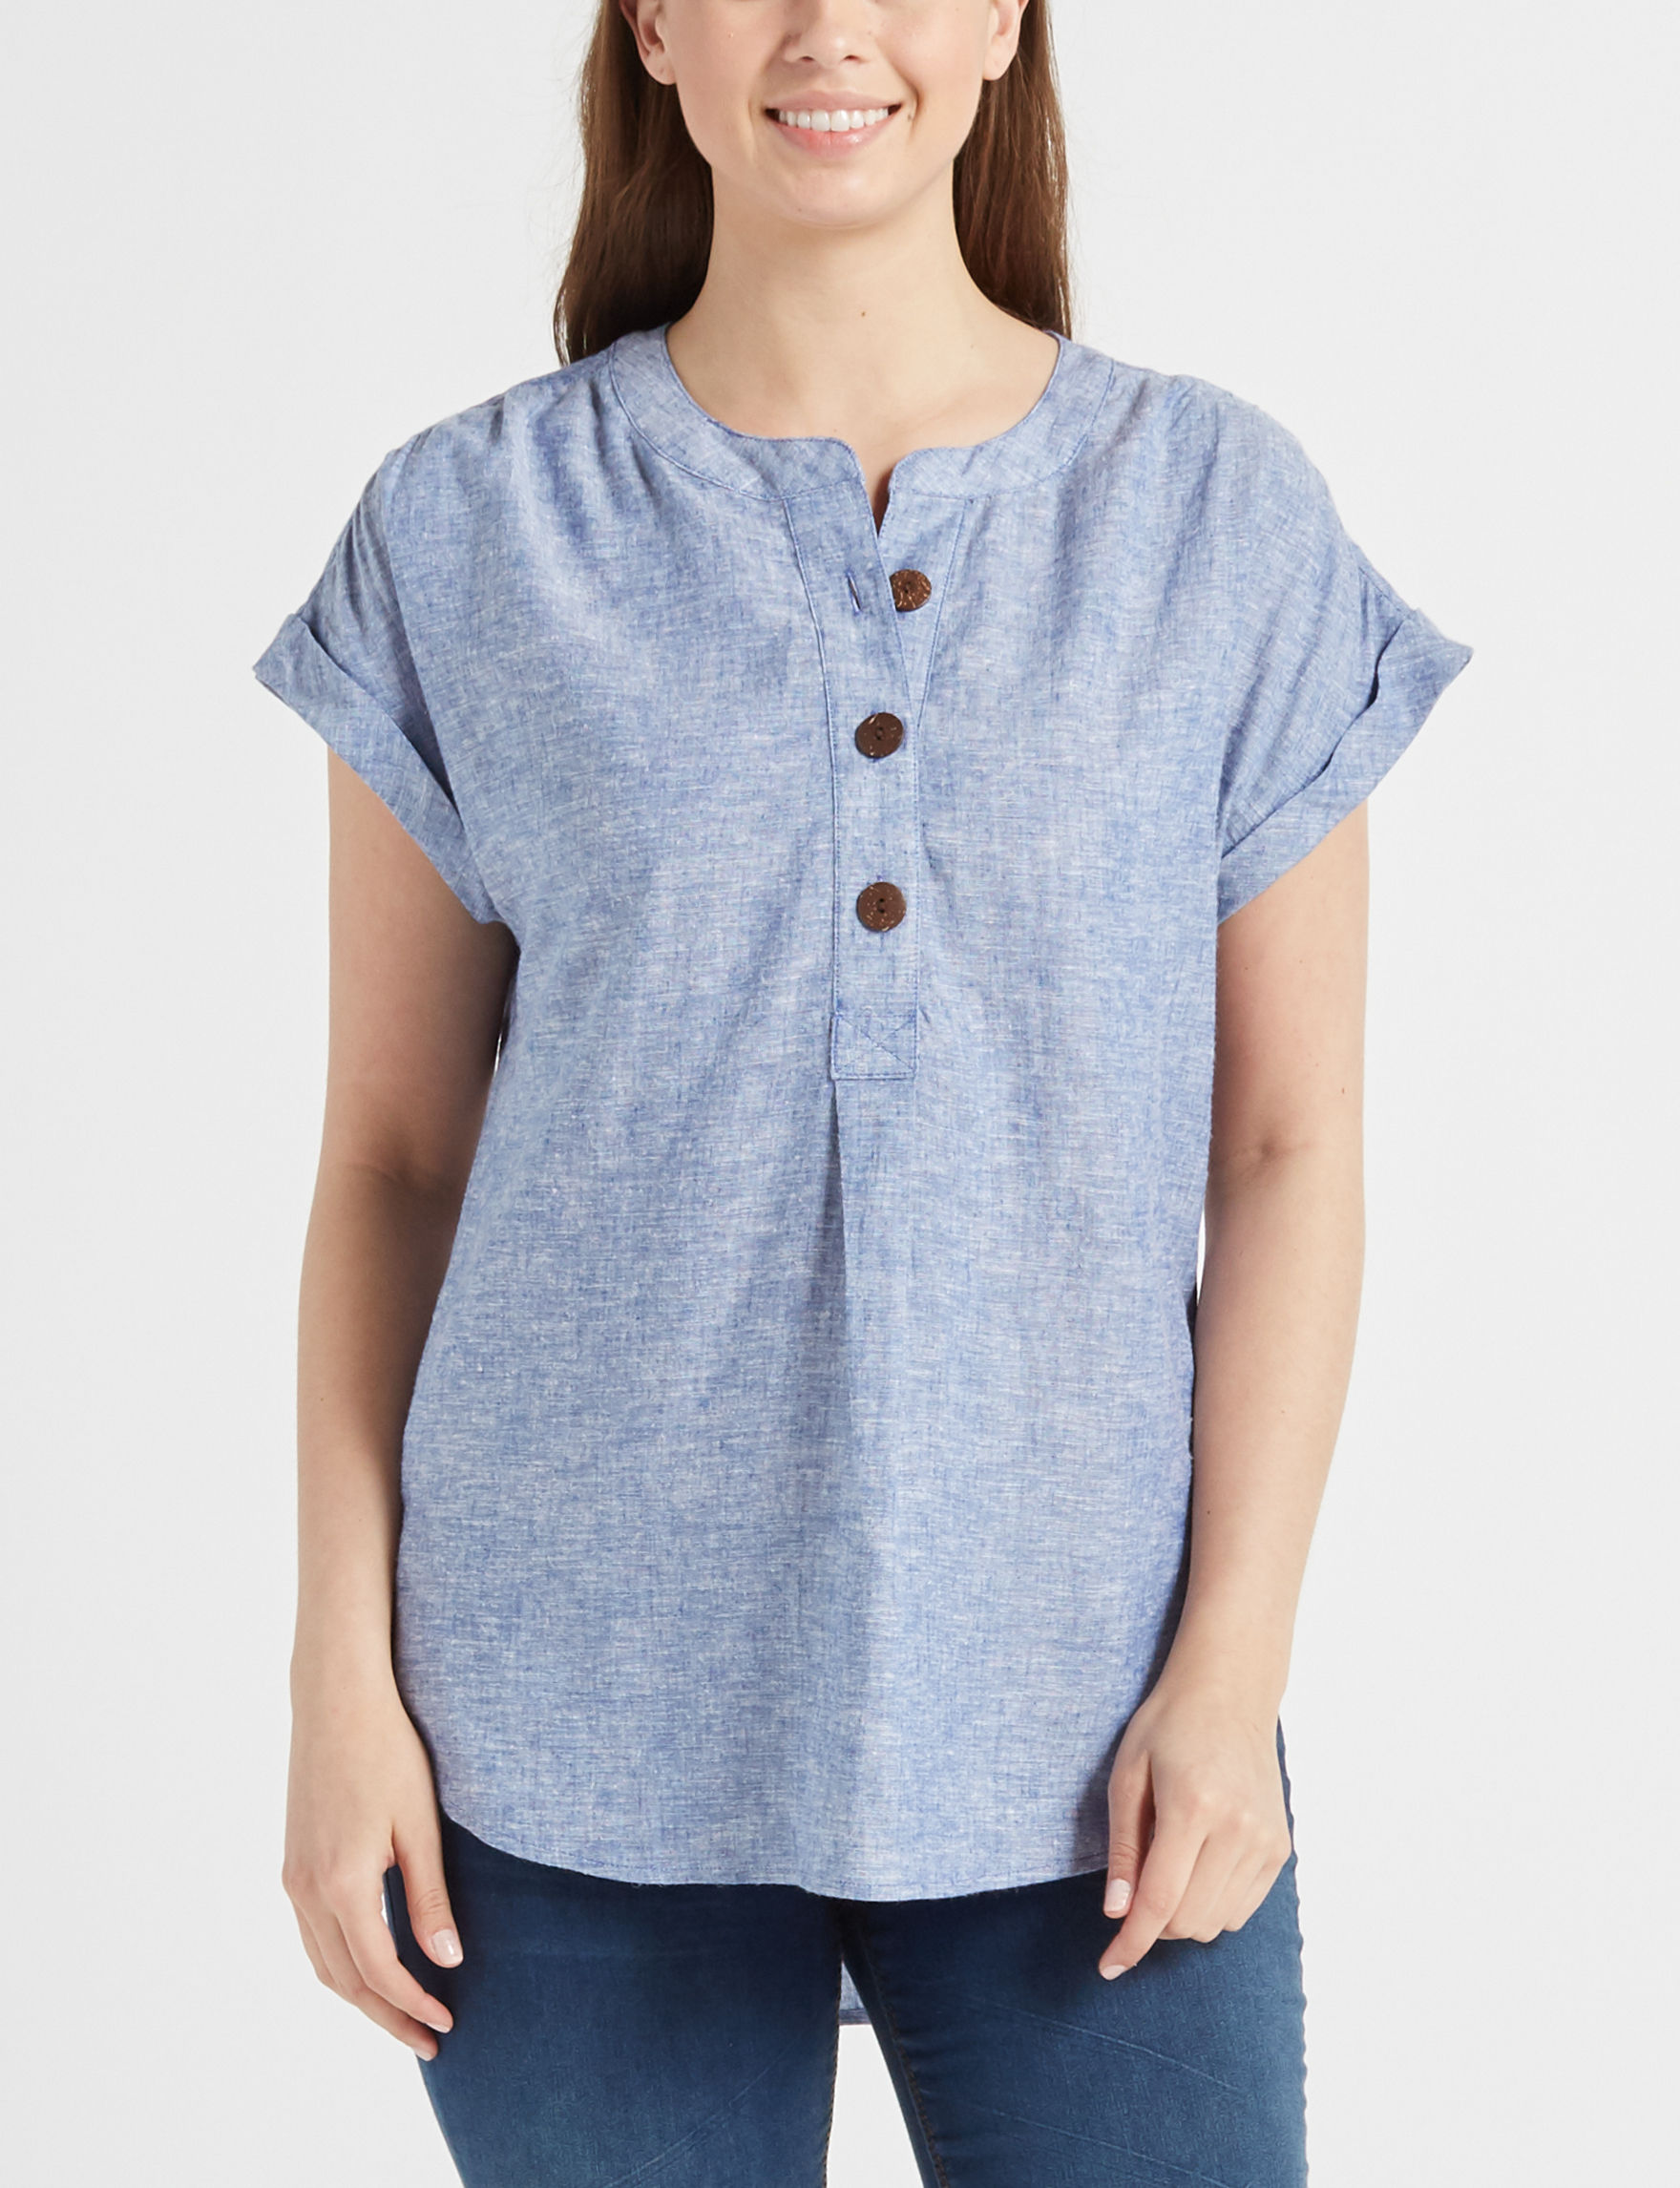 Fred David Blue Chambray Shirts & Blouses